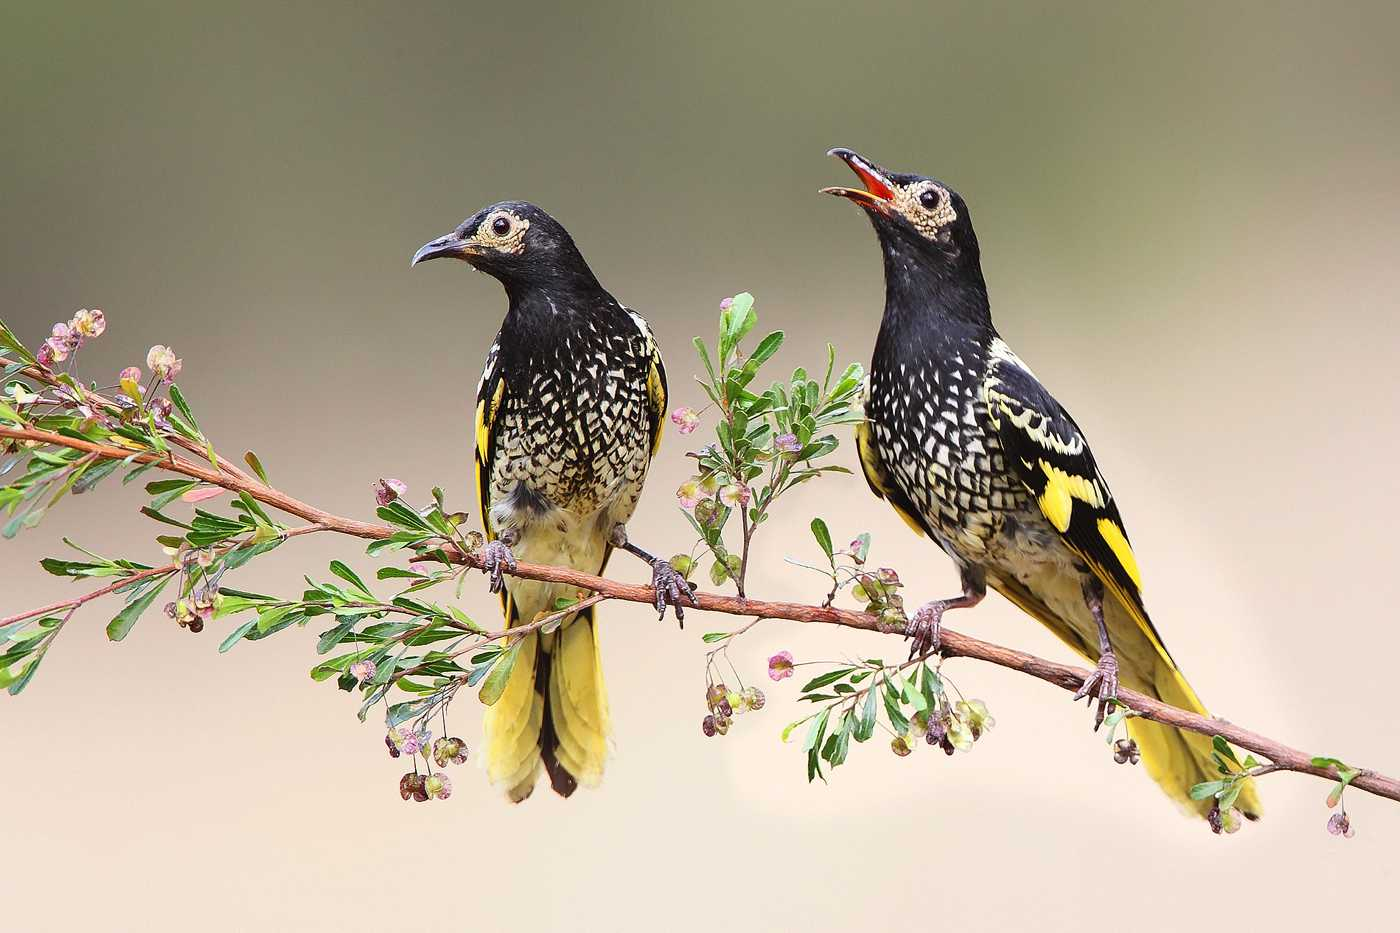 A Regent without an empire: habitat loss and the decline of the Regent Honeyeater